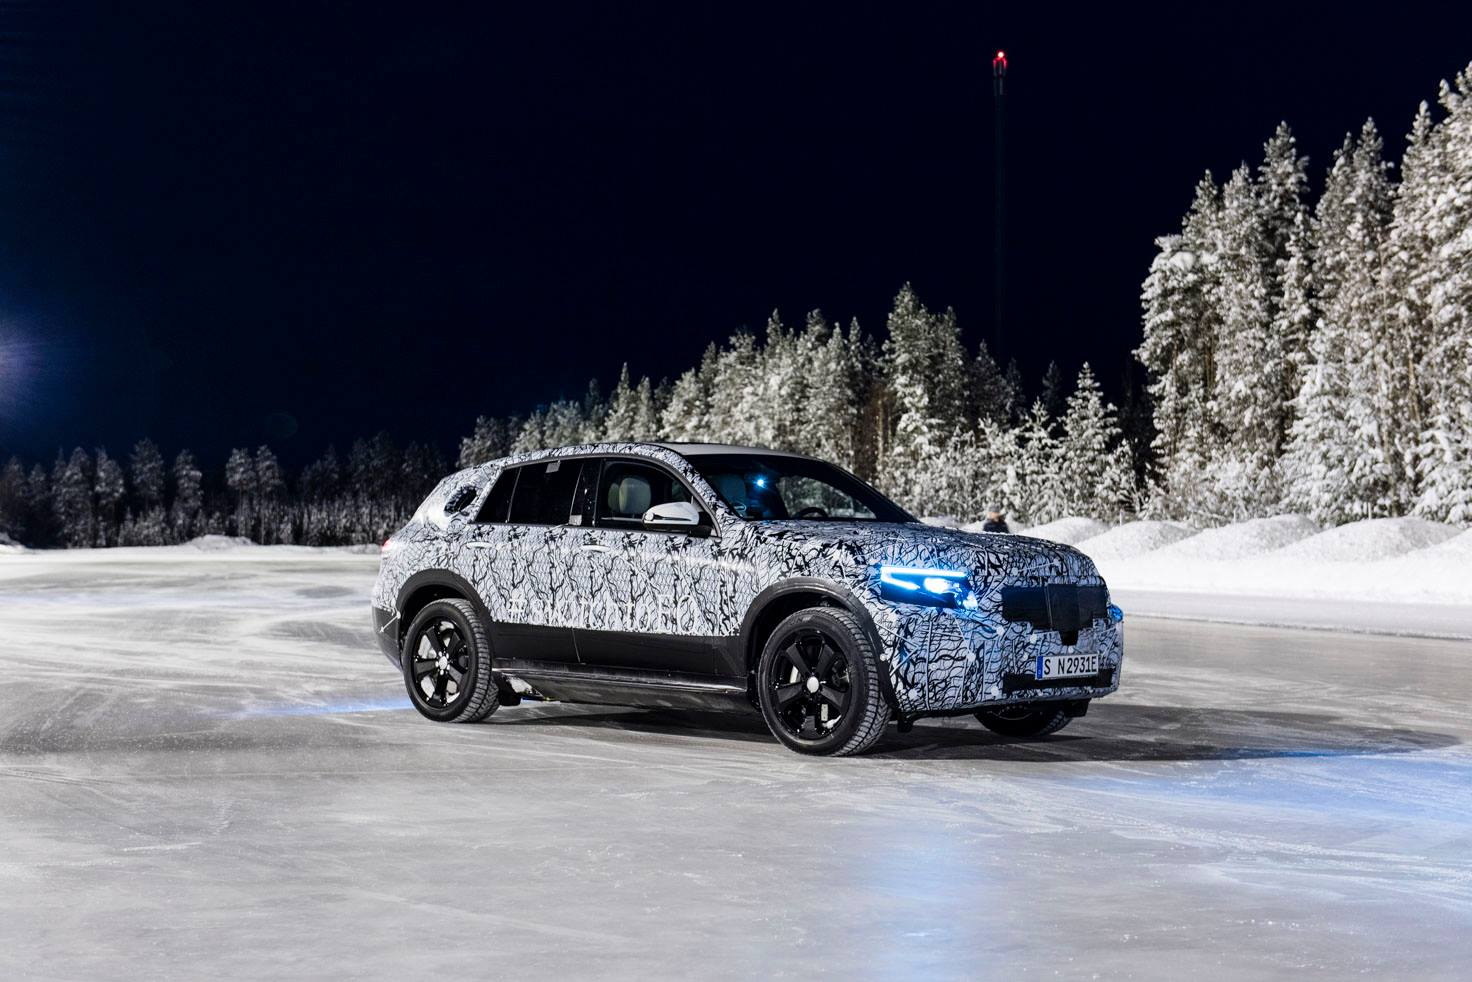 The Mercedes-Benz EQC is the company's first all-electric EQ model, which is part of Daimler Group's effort to bring in up to ten all-electric models to the market by 2022.